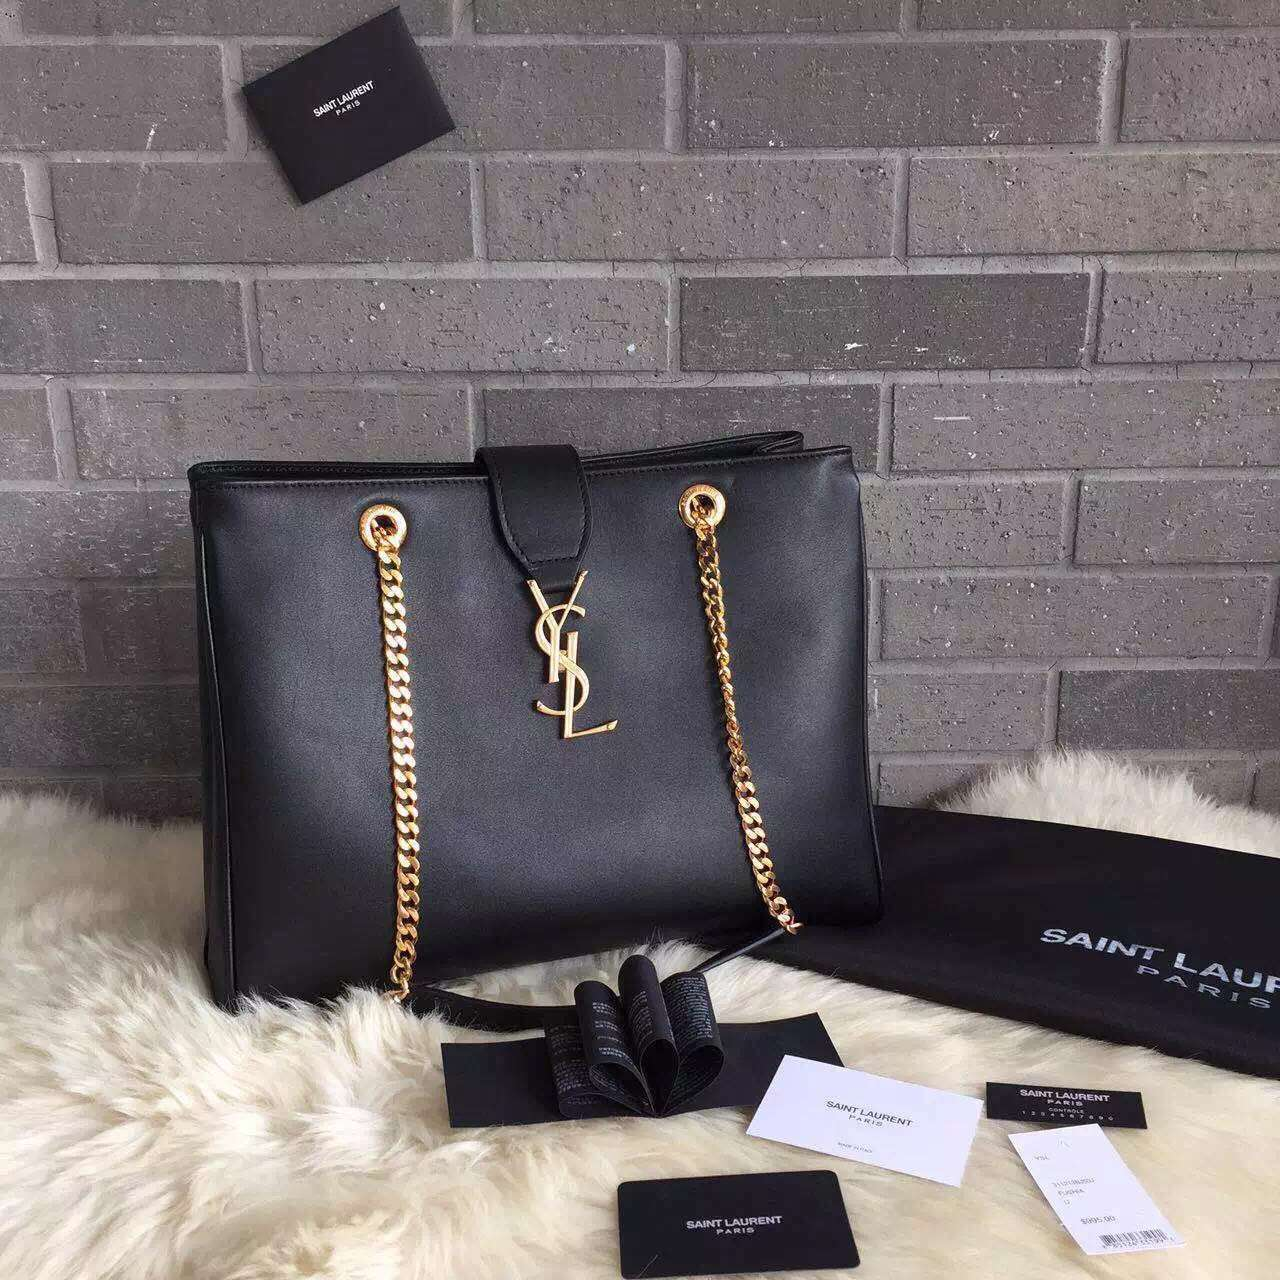 2015 New Saint Laurent Bag Cheap Sale-Saint Laurent Classic Monogram Shopping Bag in Black Smooth Calfskin Leather with Gold Chain